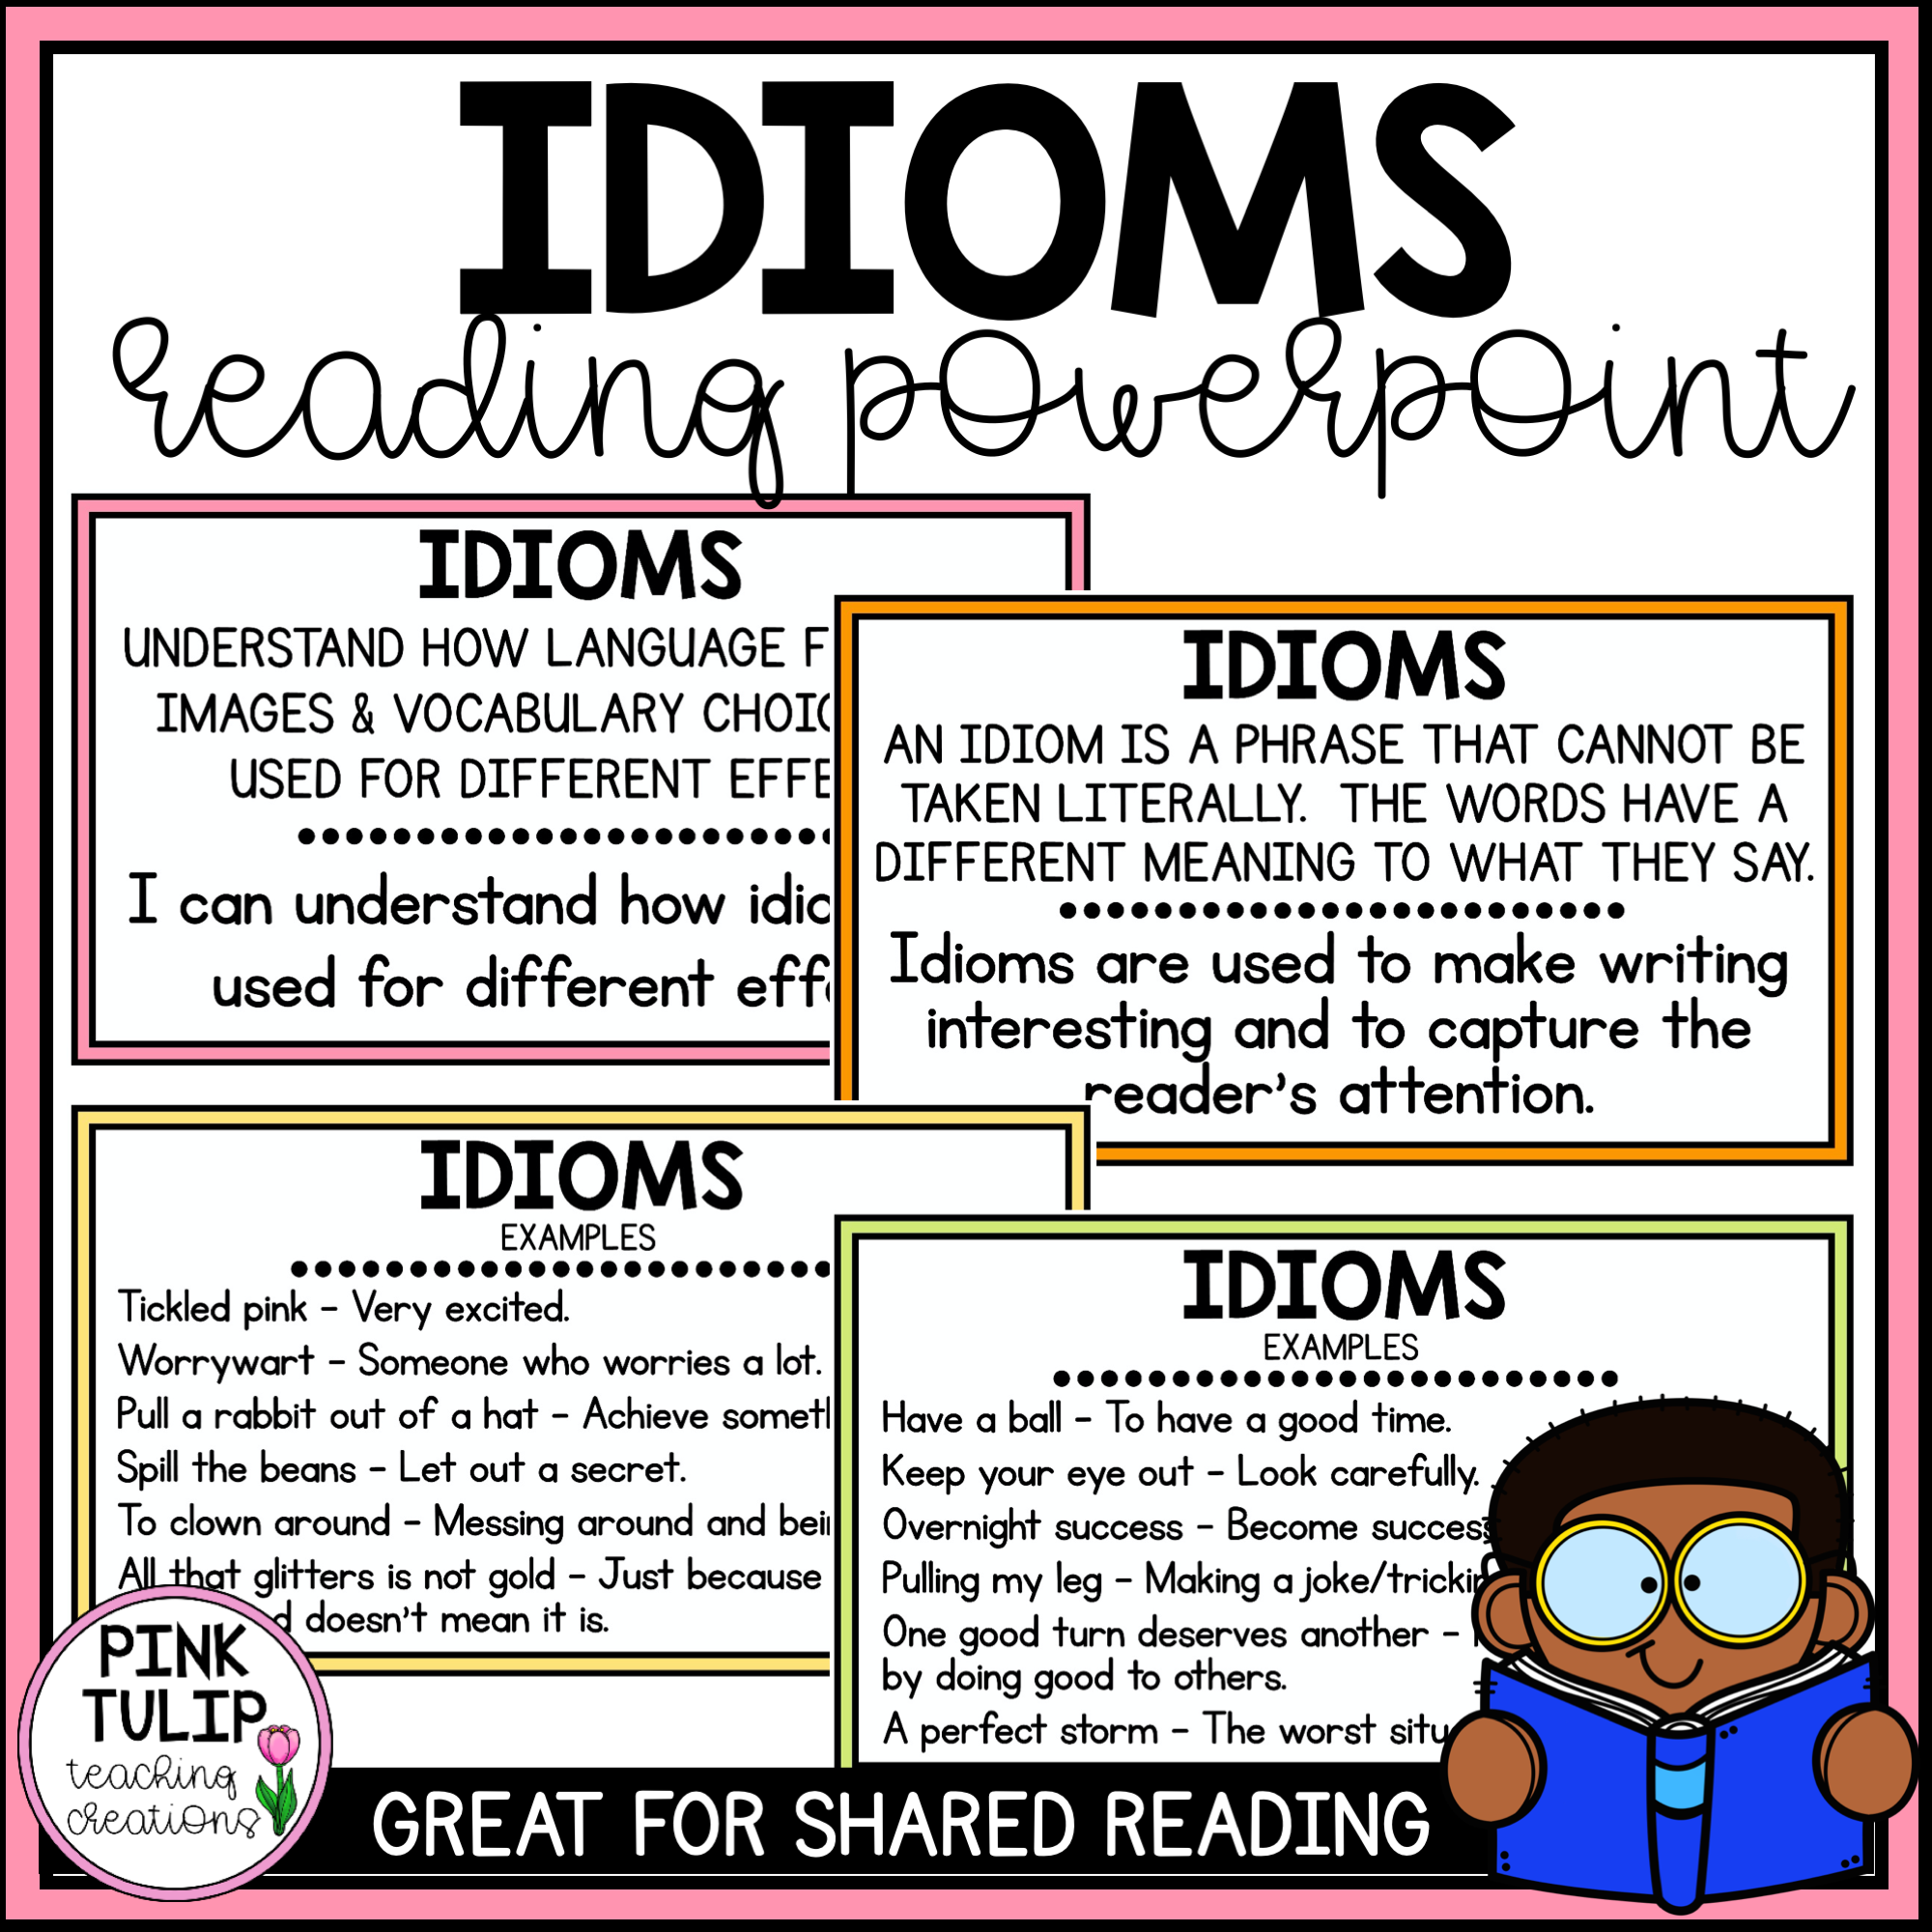 Comprehension Worksheet Idioms Printable Worksheets And Activities For Teachers Parents Tutors And Homeschool Families Reading and language arts ideas for elementary teachers is a resource for teachers with links to games, activities, worksheets, and lessons. printable worksheets and activities for teachers parents tutors and homeschool families